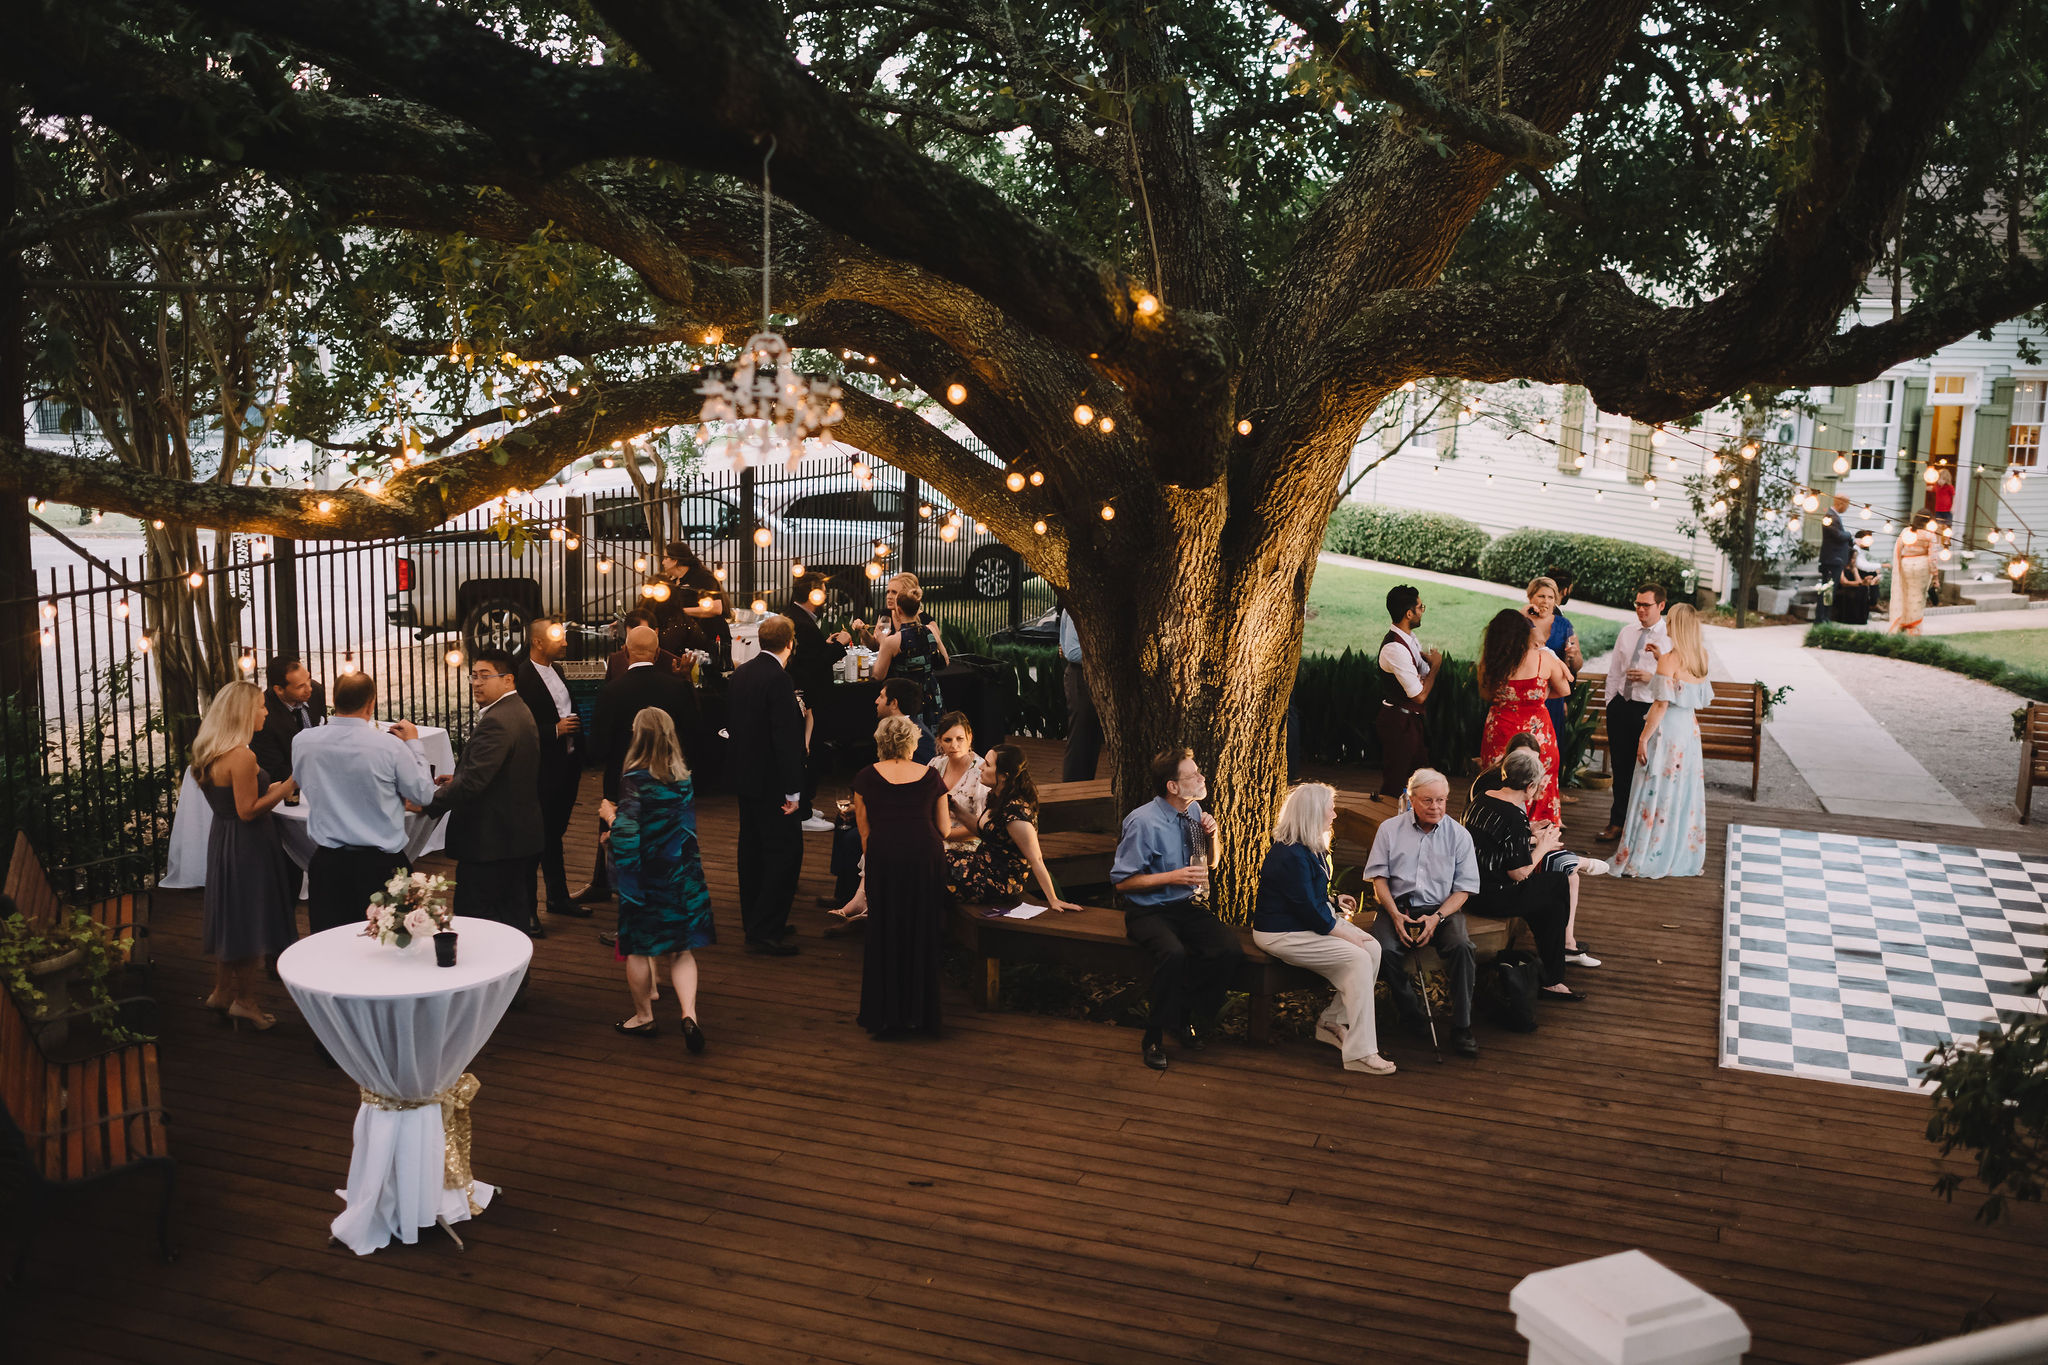 Guests enjoyed a cocktail hour under illuminated oak trees while the happy couple signed their marriage license and enjoyed a private meal together.